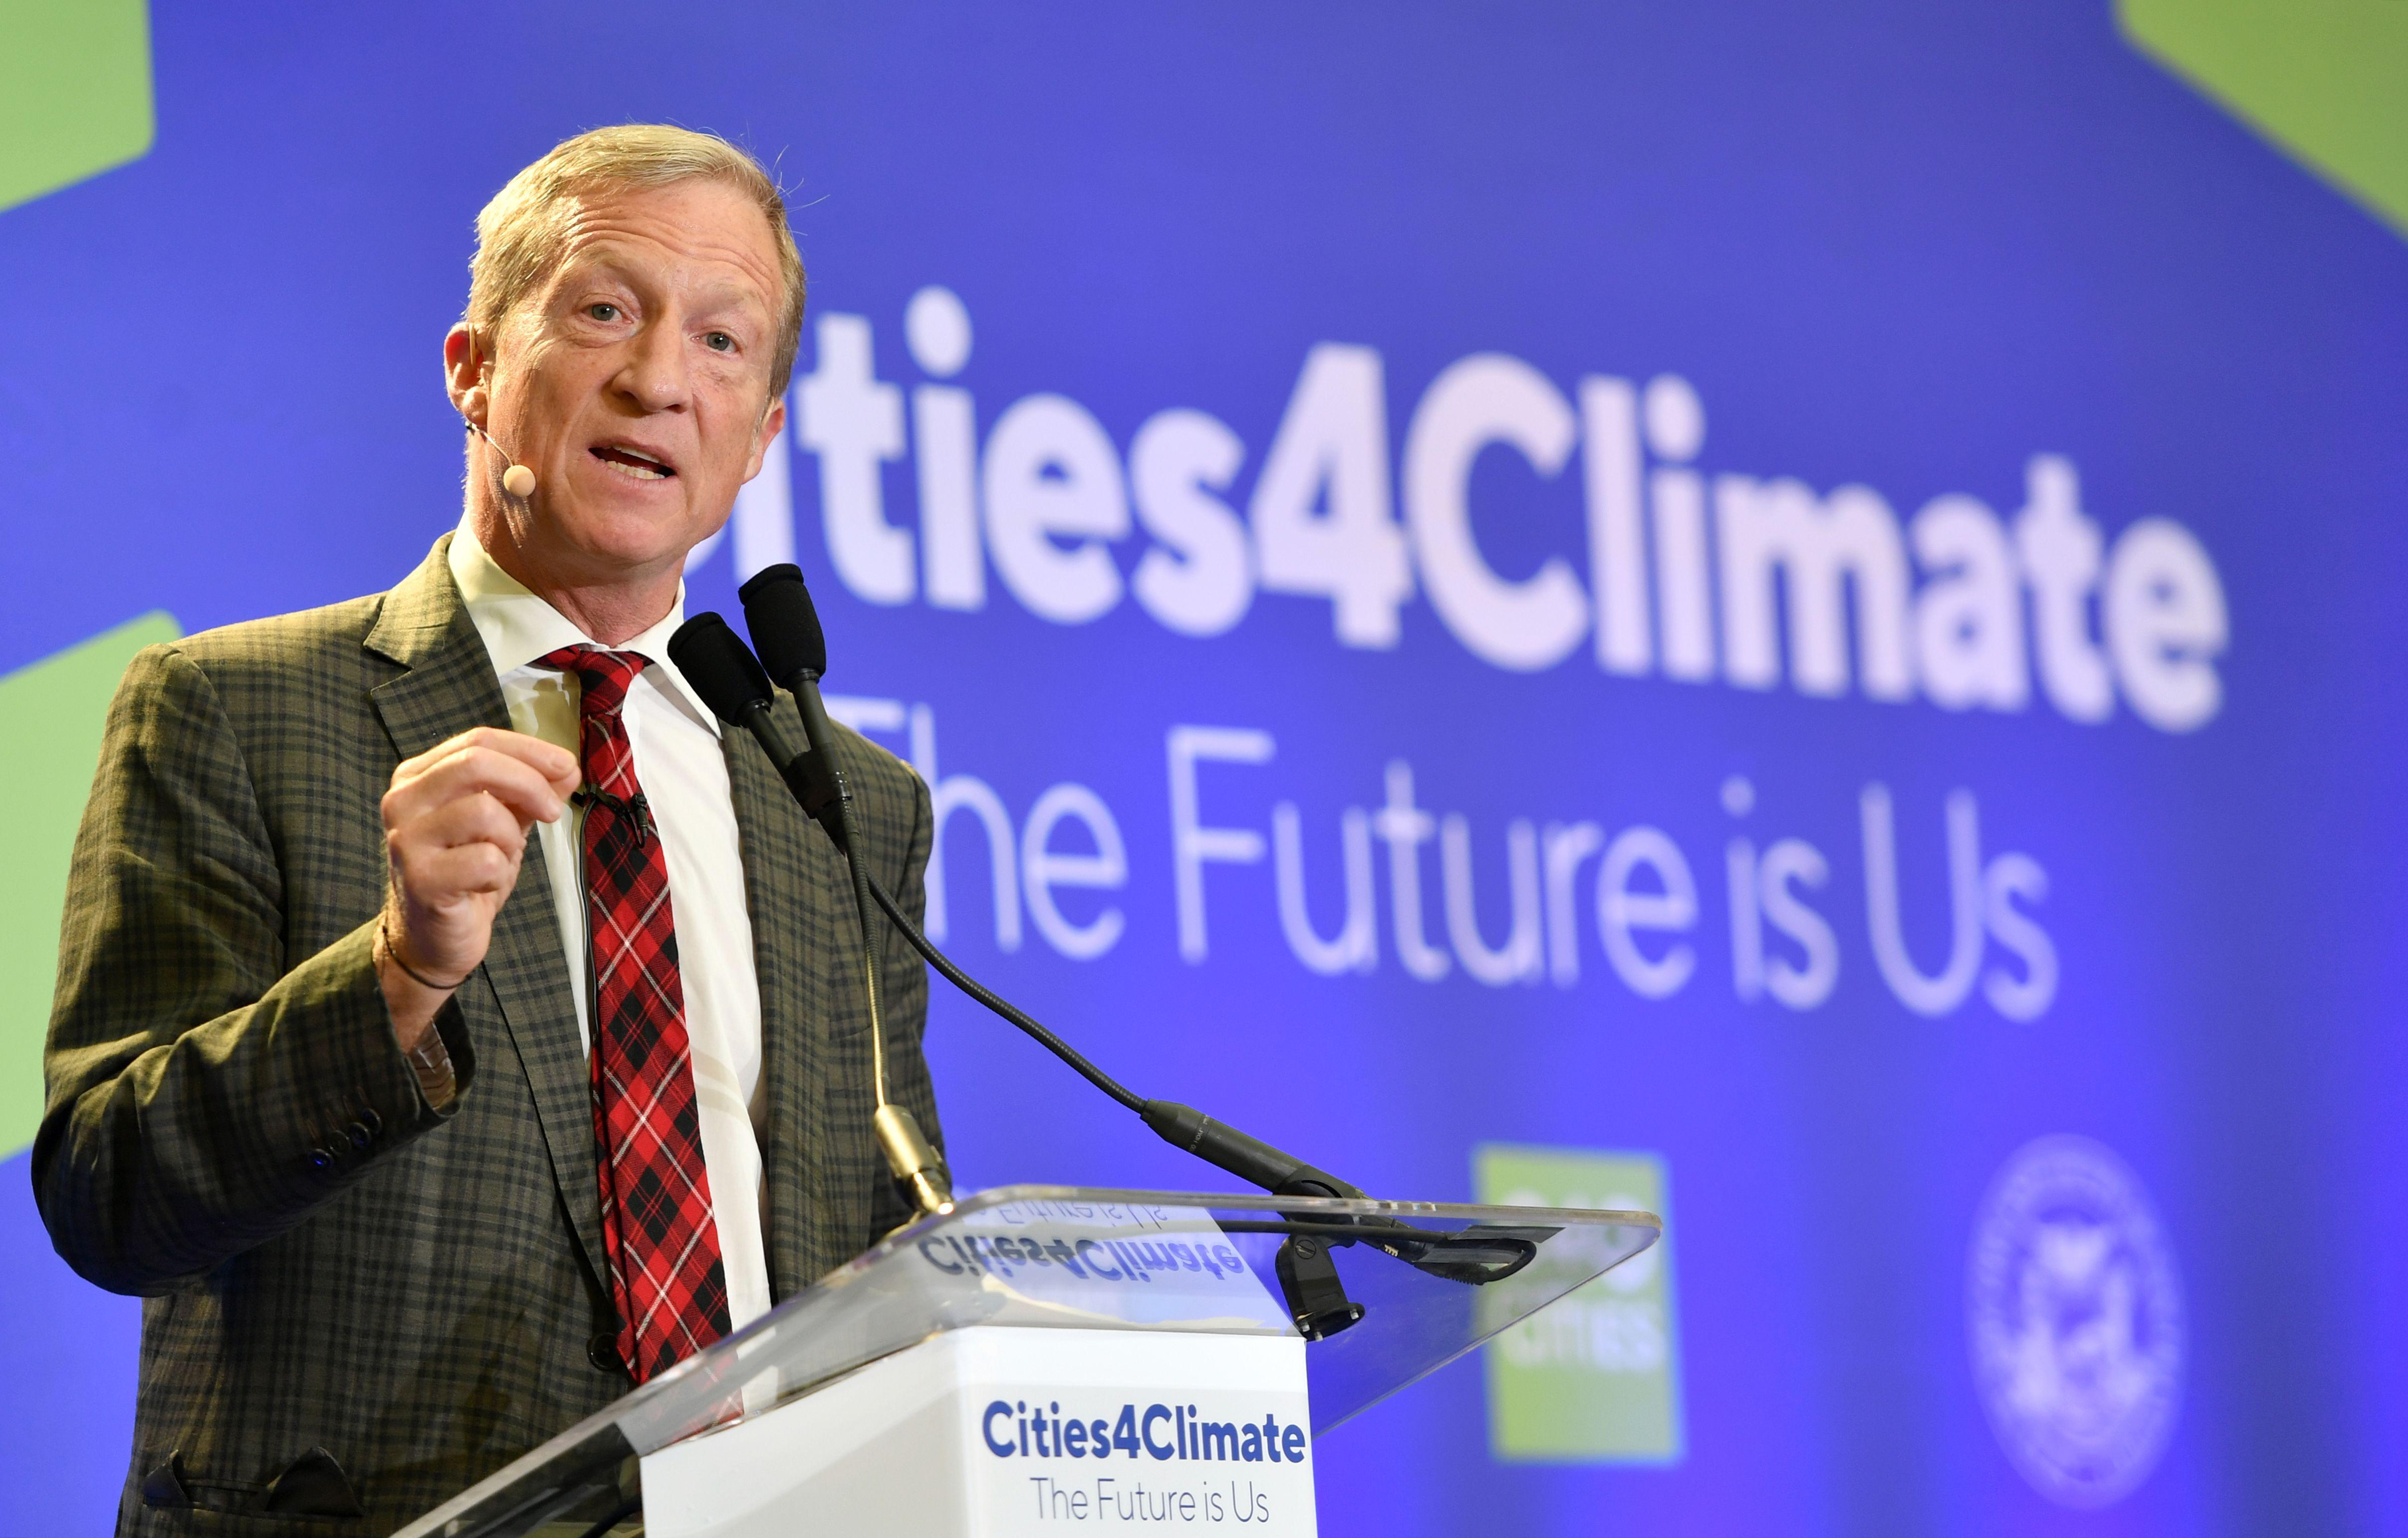 Tom Steyer, Founder & President of NextGen America, speaks during the C40 Cities For Climate The Future Is Us kickoff event in San Francisco, California on September 12, 2018.